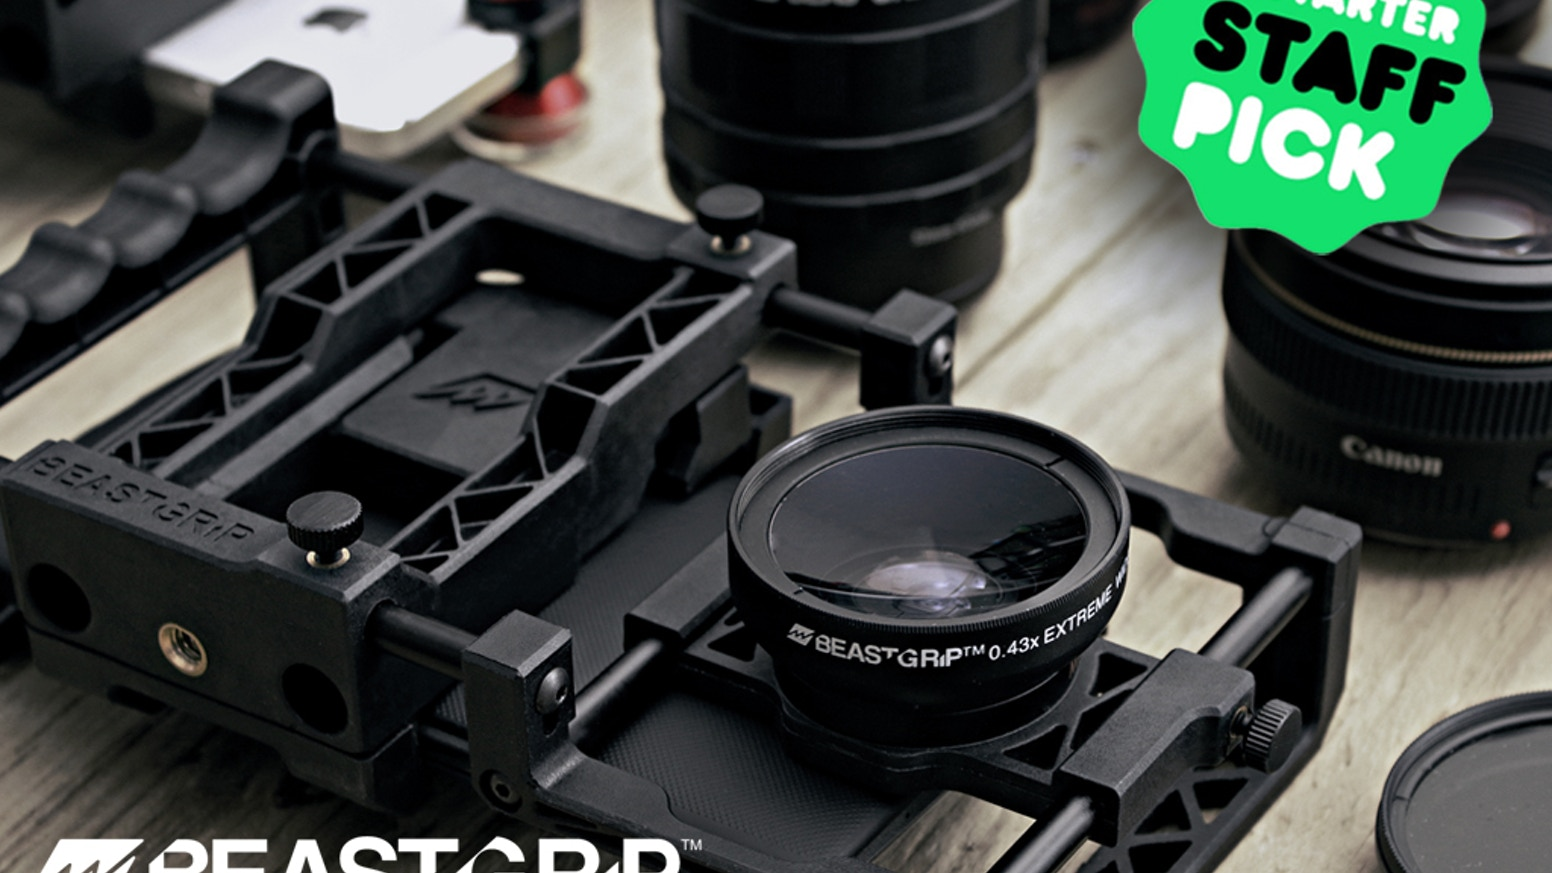 The most versatile lens adapter and rig system for phoneographers. Compatible with iOS, Android and Windows phones!